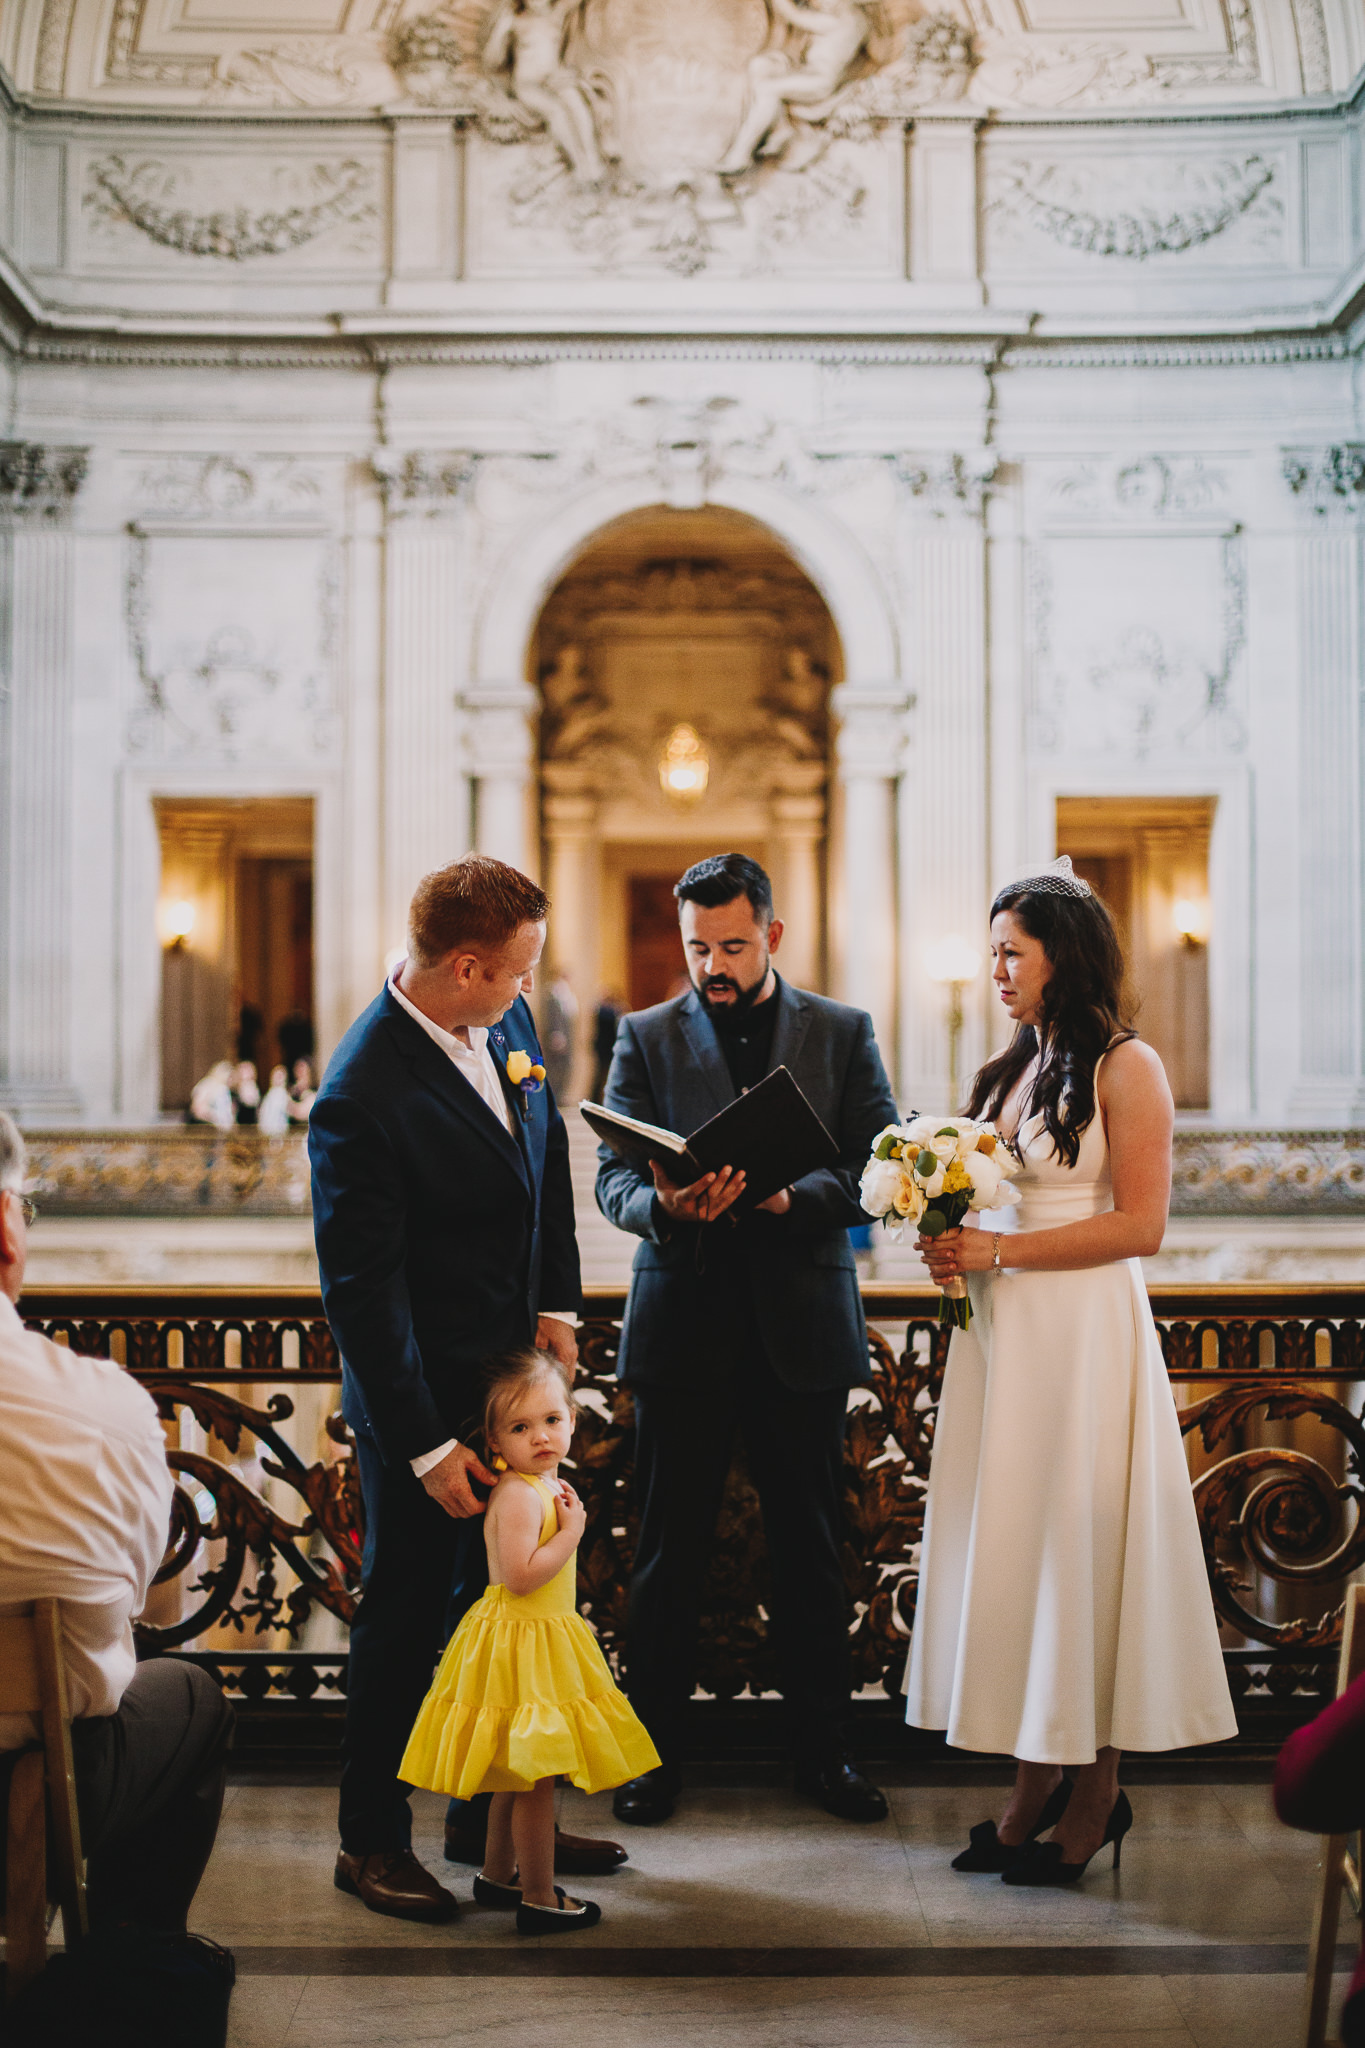 Archer Inspired Photography SF City Hall Elopement Wedding Lifestyle Documentary Affordable Photographer-74.jpg